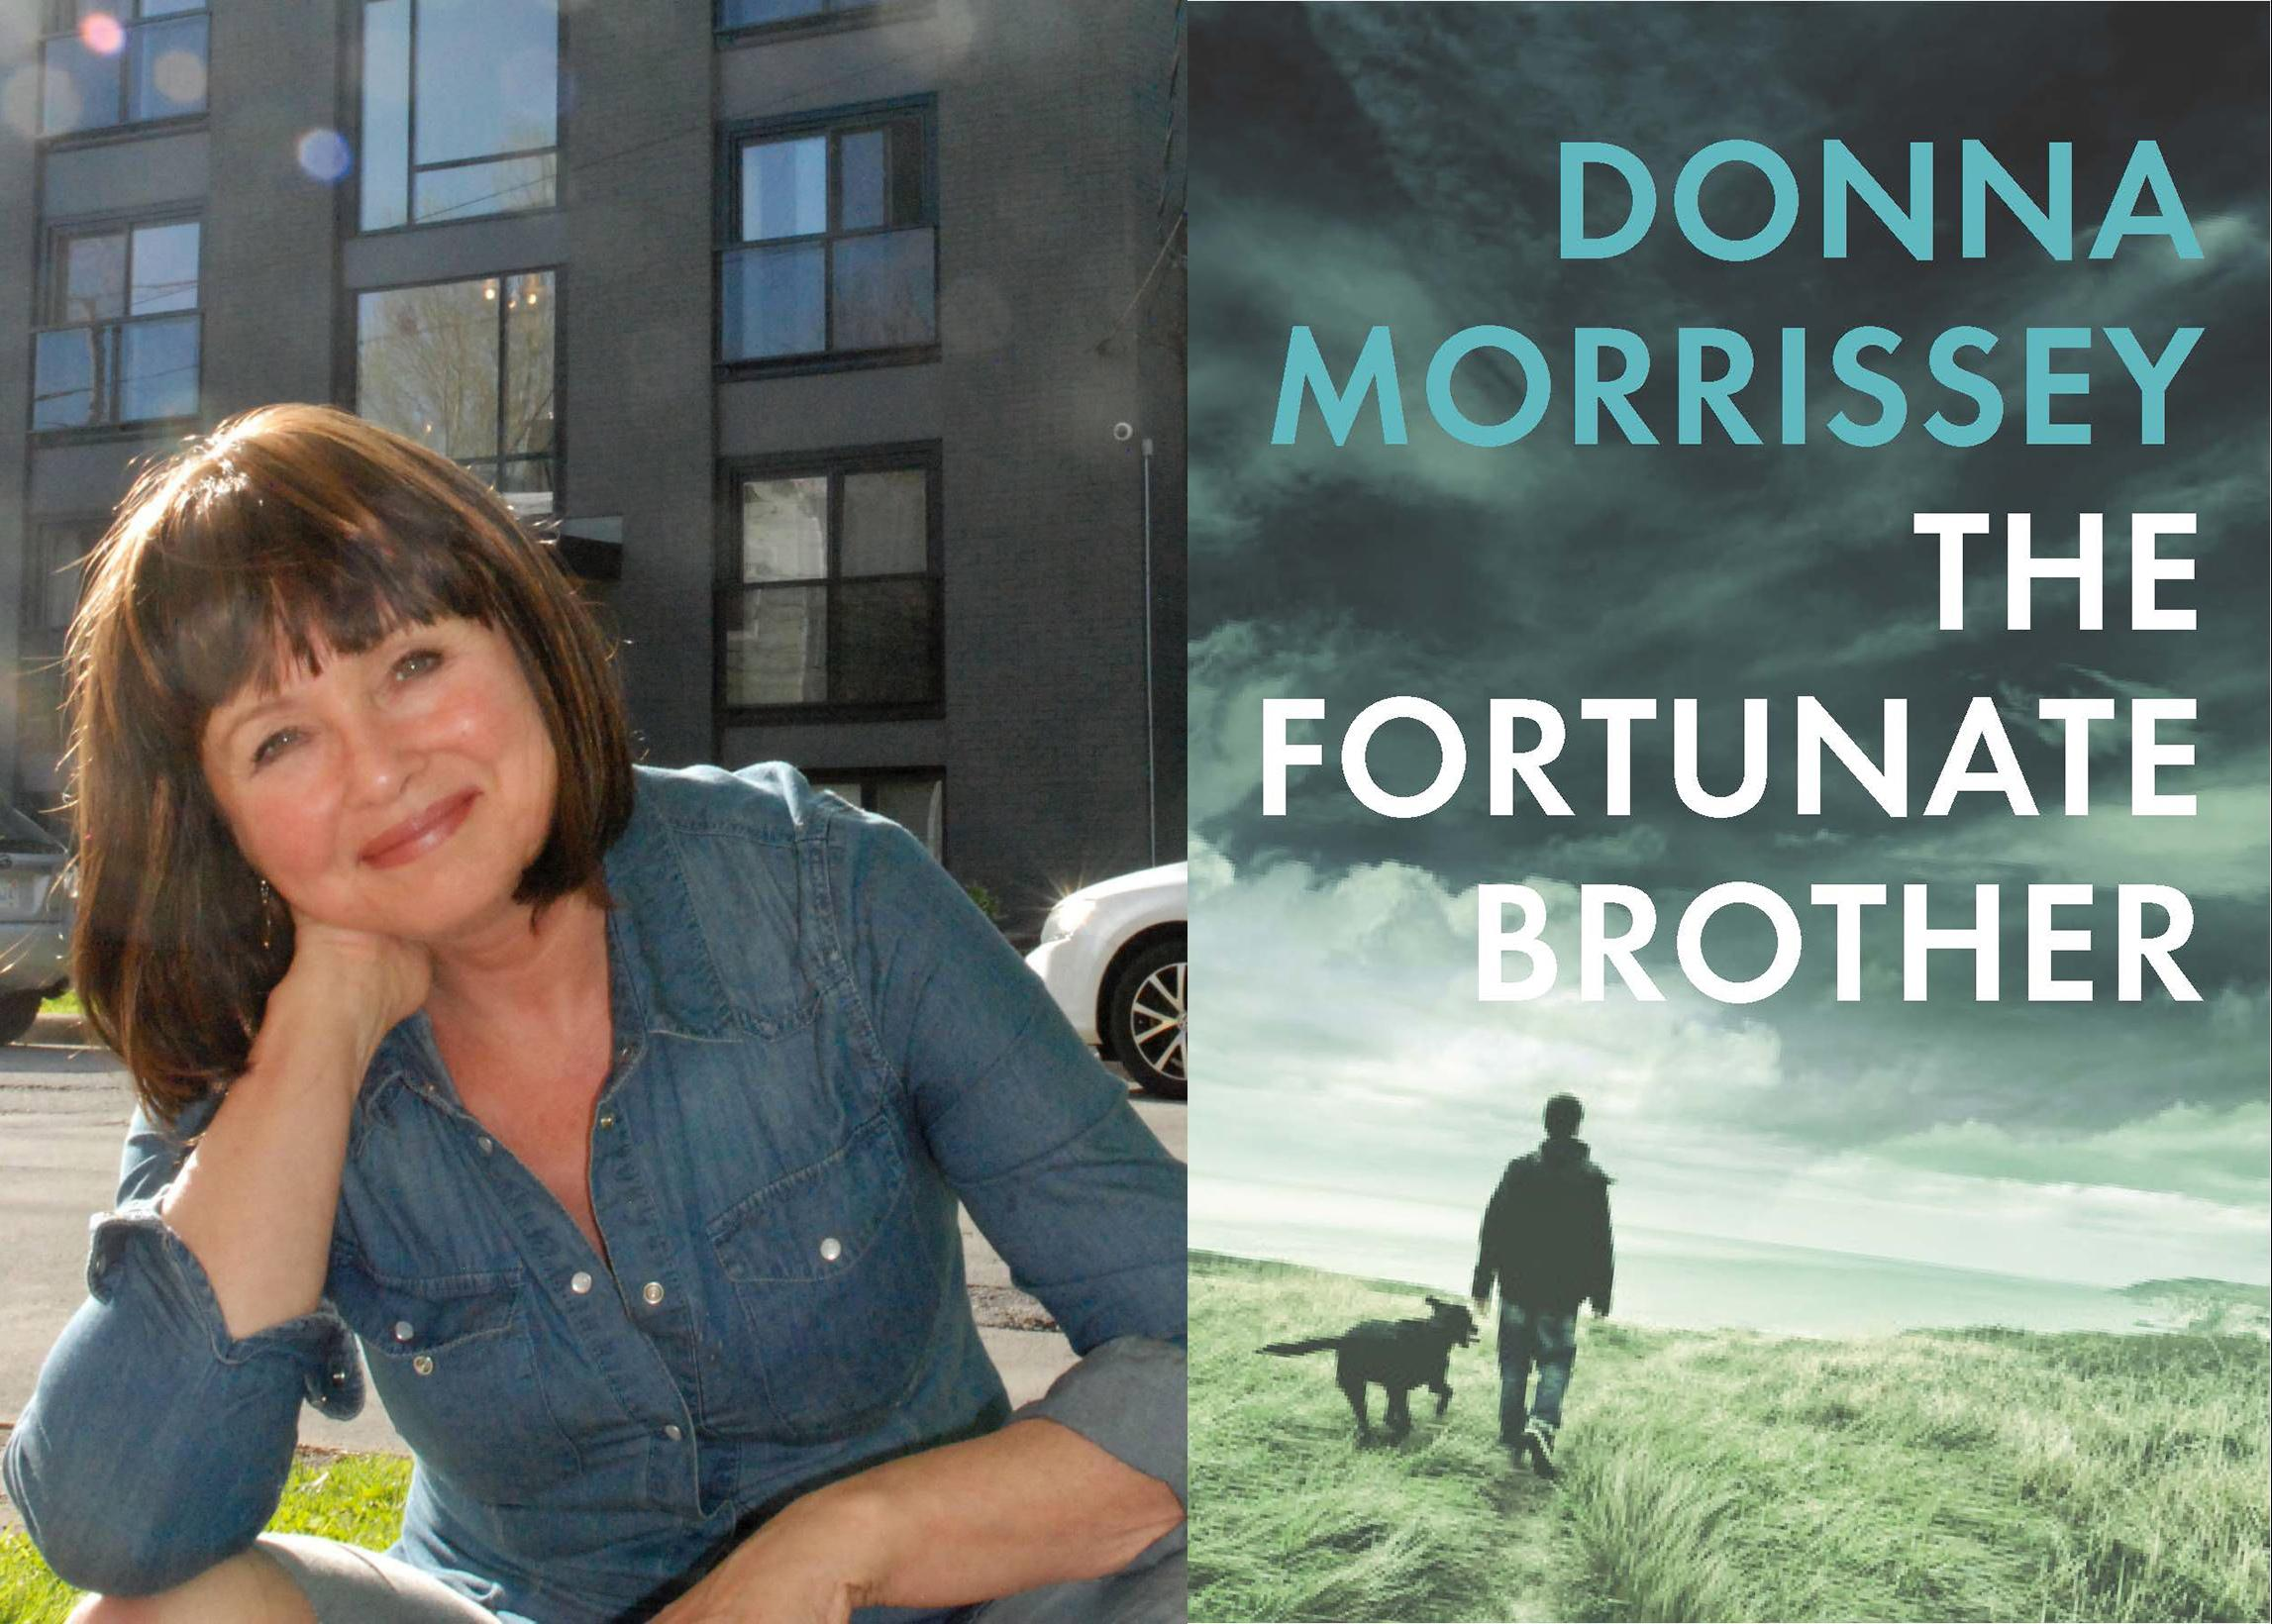 A evening with Donna Morrissey